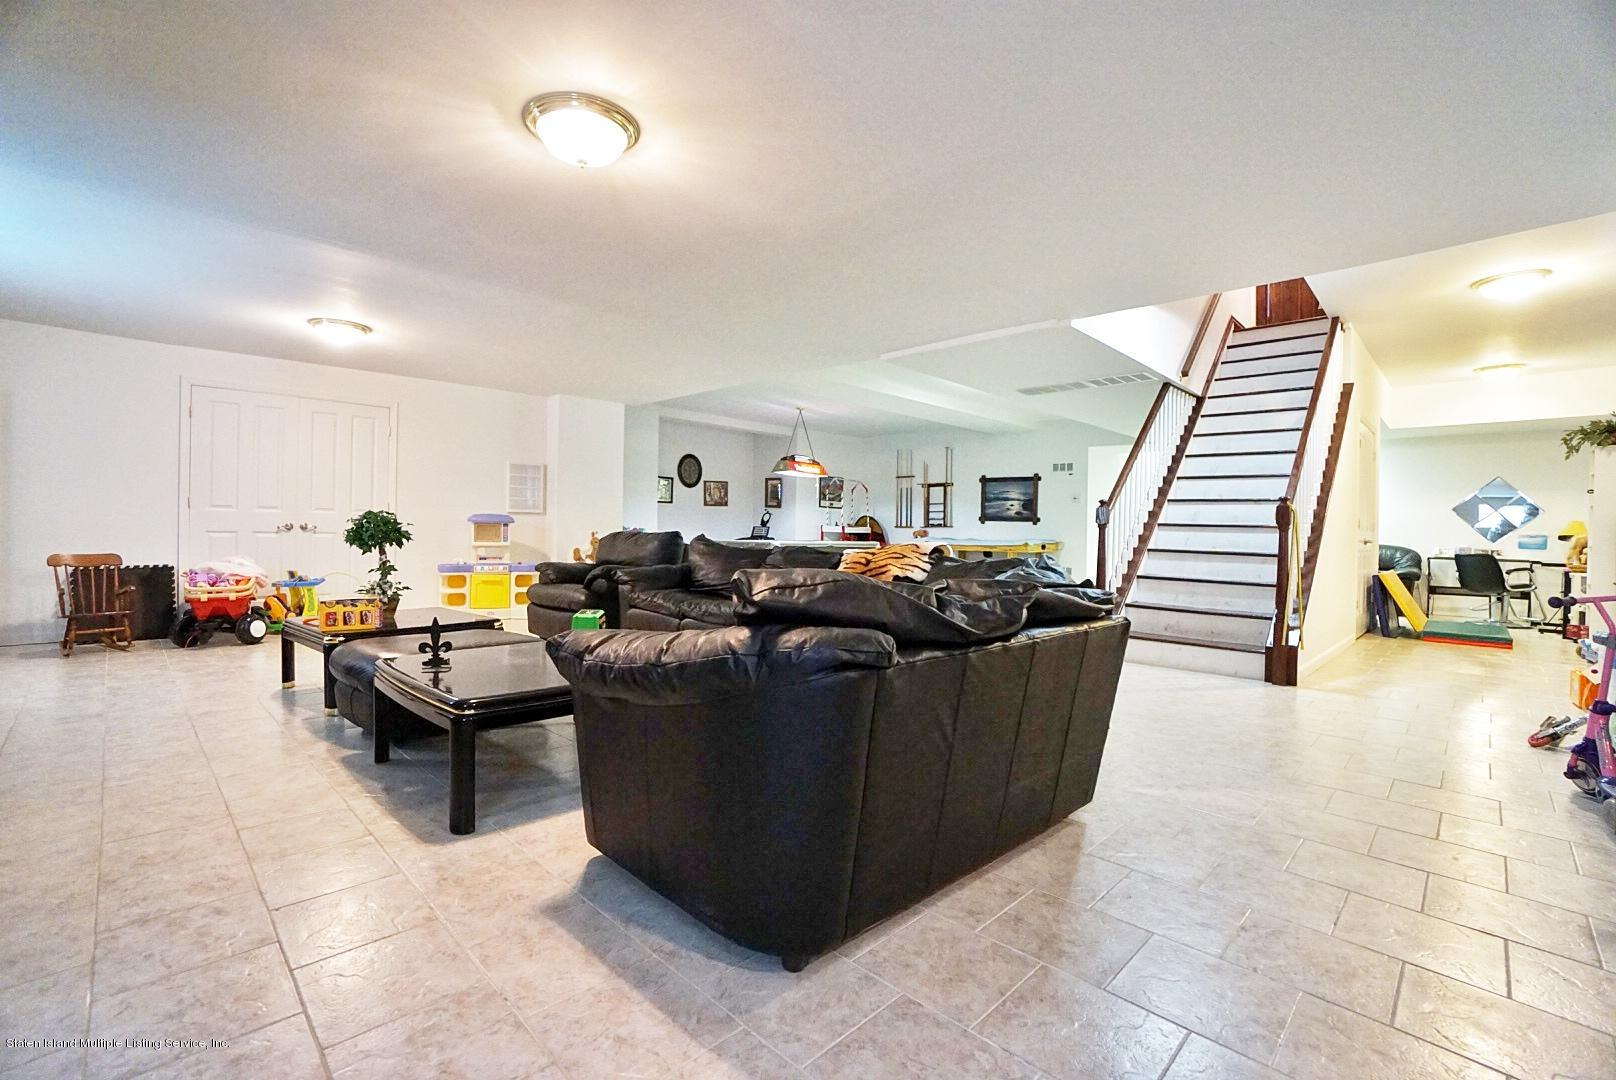 Single Family - Detached 86 Jarvis Avenue  Staten Island, NY 10312, MLS-1136990-38